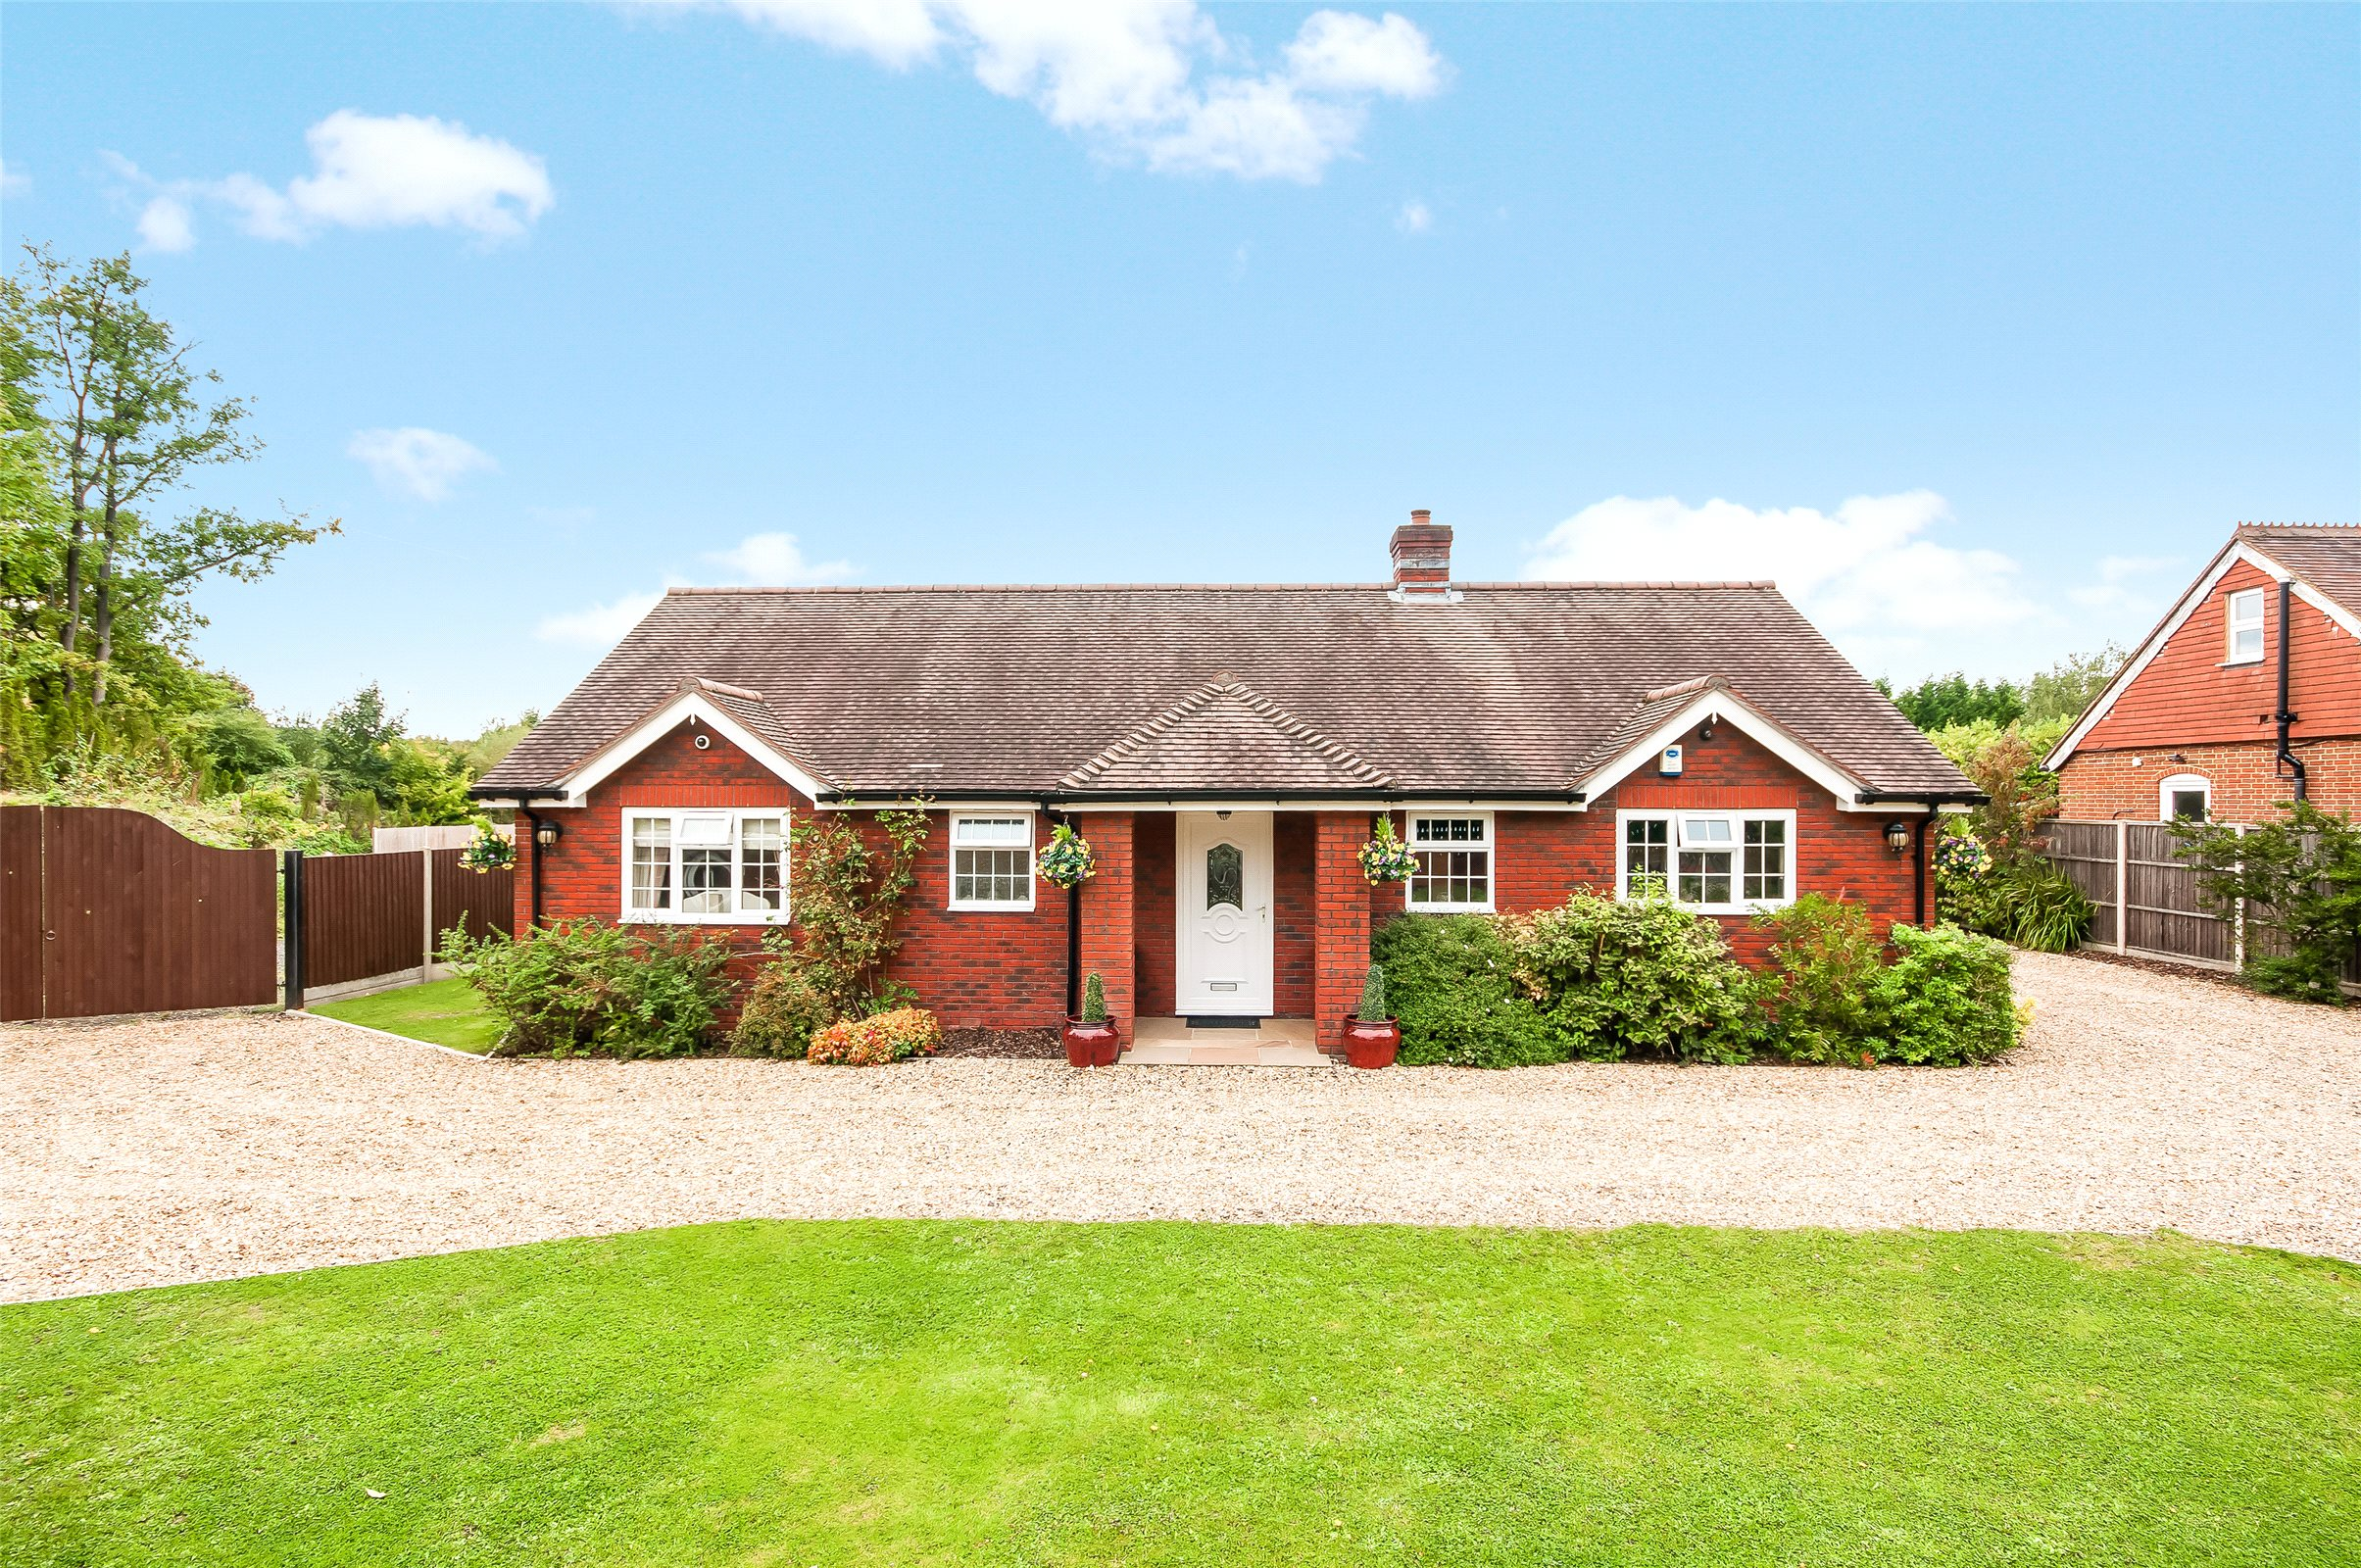 3 Bedrooms Detached Bungalow for sale in Coles Lane, Capel, Dorking, Surrey, RH5